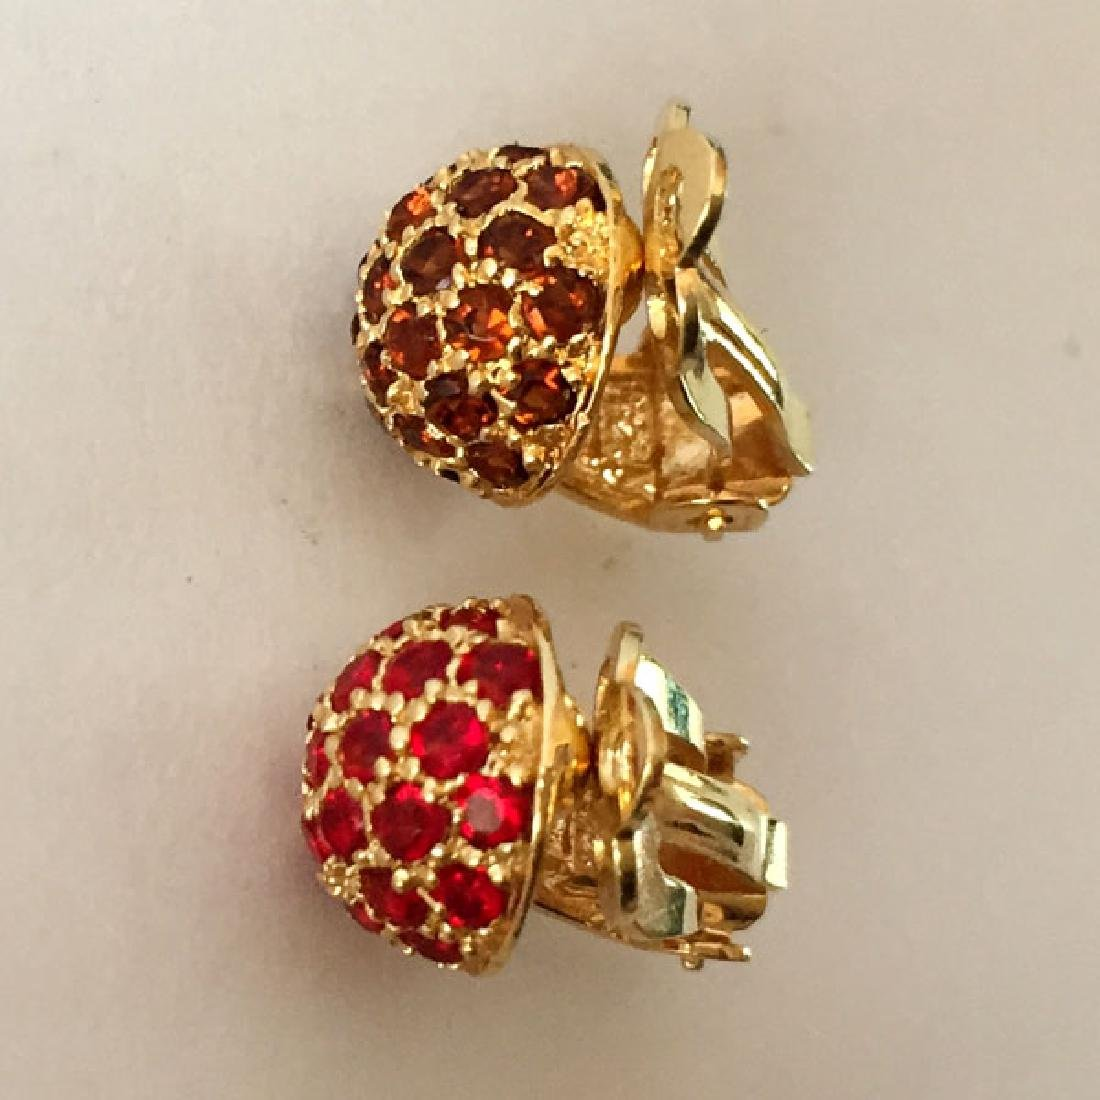 Gold plated sterling silver dome shaped ear clips with - 4